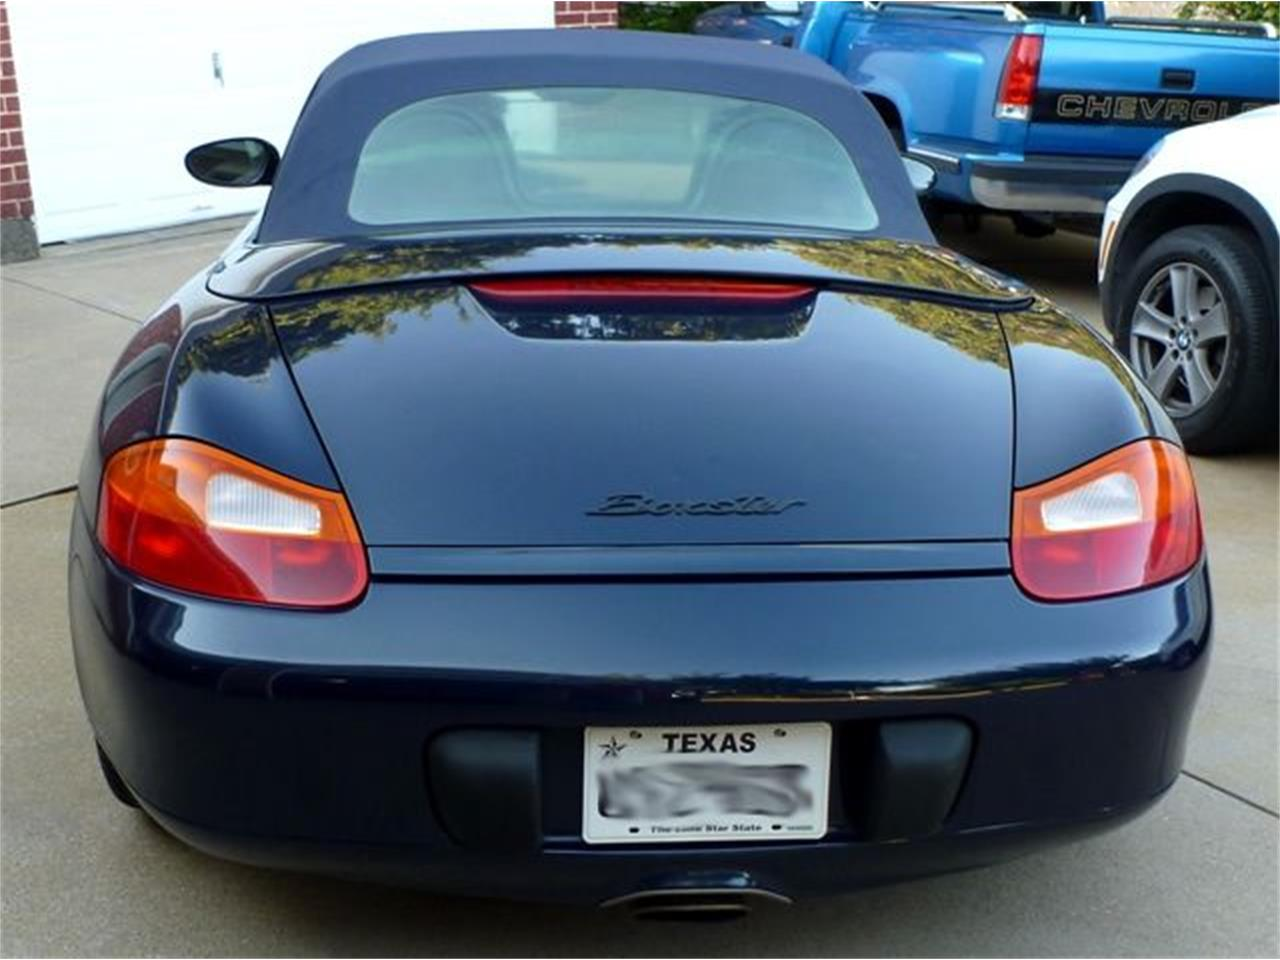 Large Picture of 1999 Porsche Boxster - $8,500.00 Offered by Classical Gas Enterprises - LF20